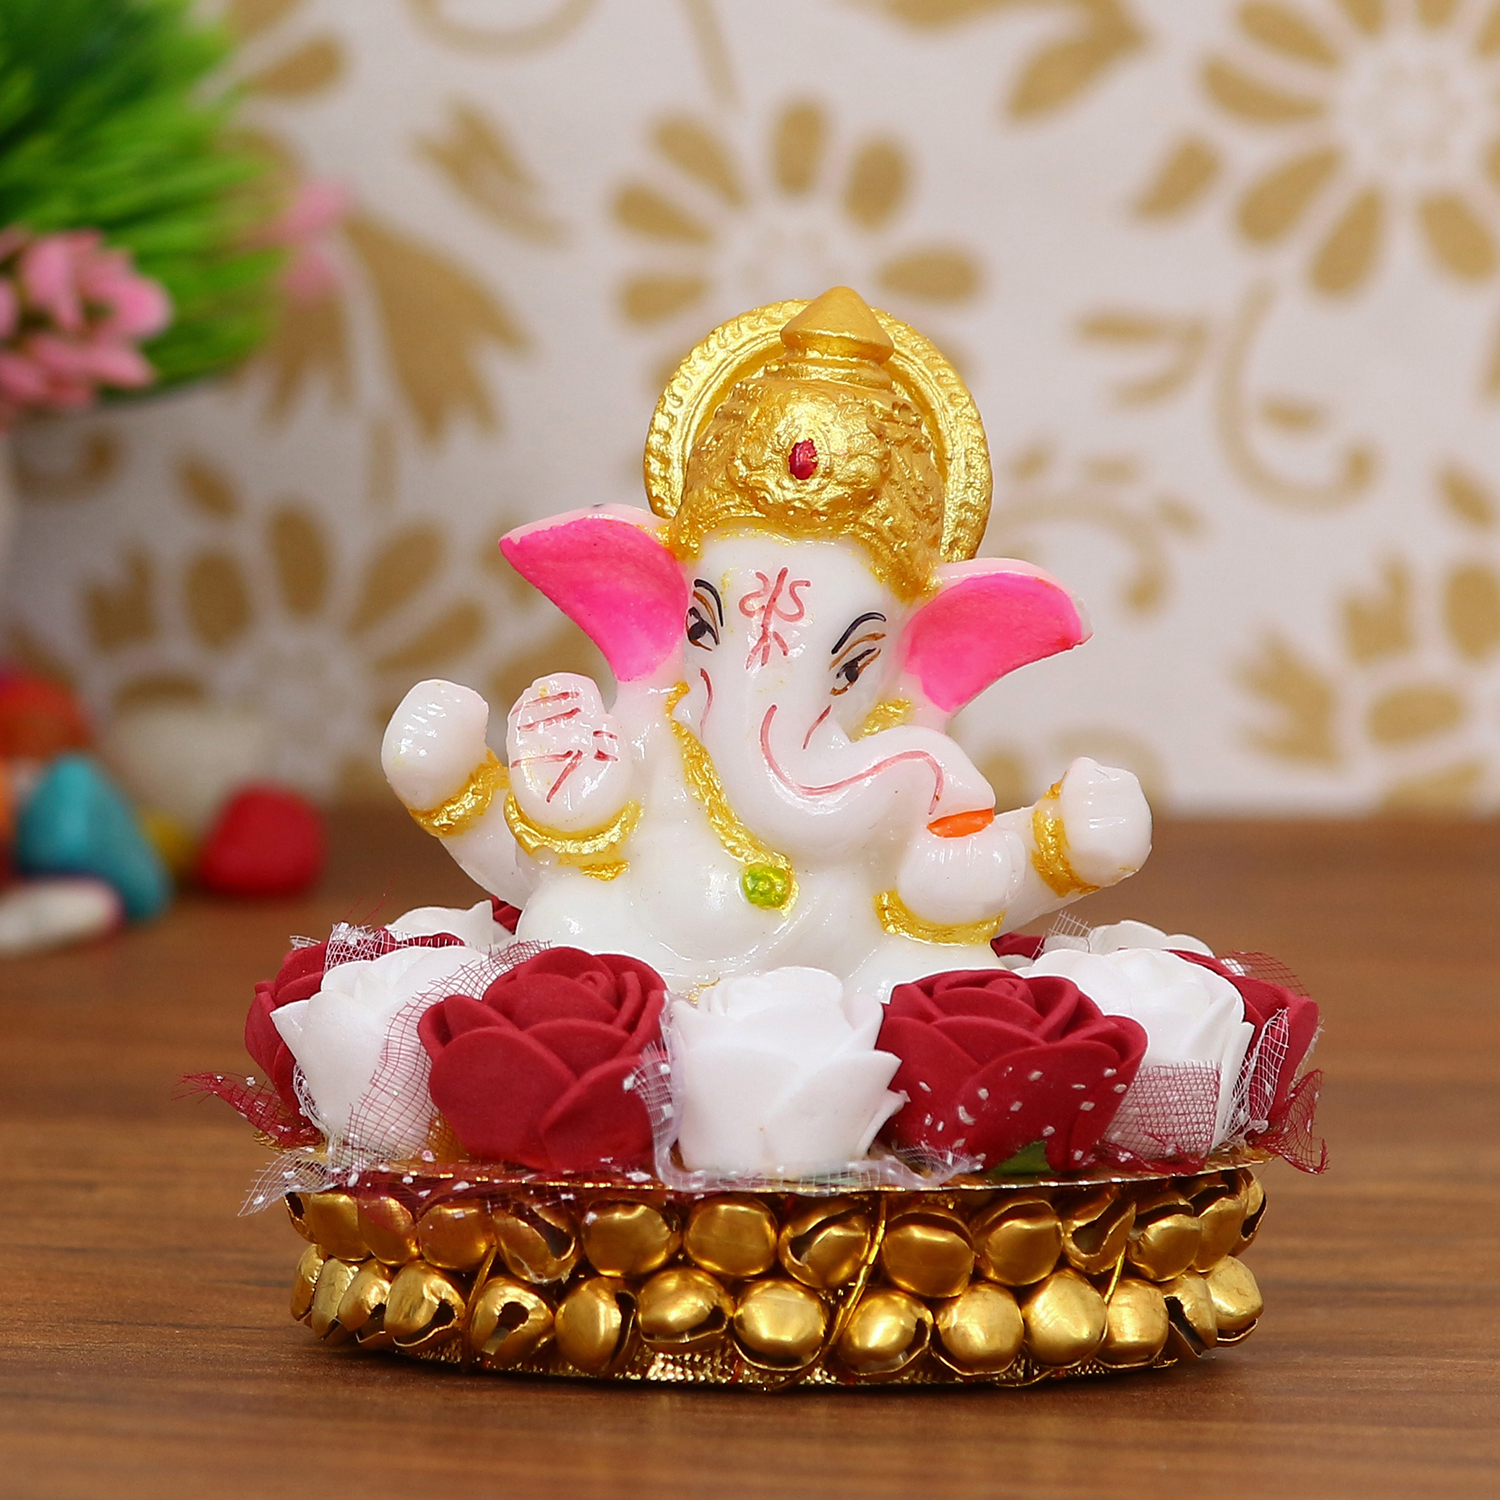 Lord Ganesha Idol on Decorative Handcrafted Plate with Red and White Flowers Indian Home Decor